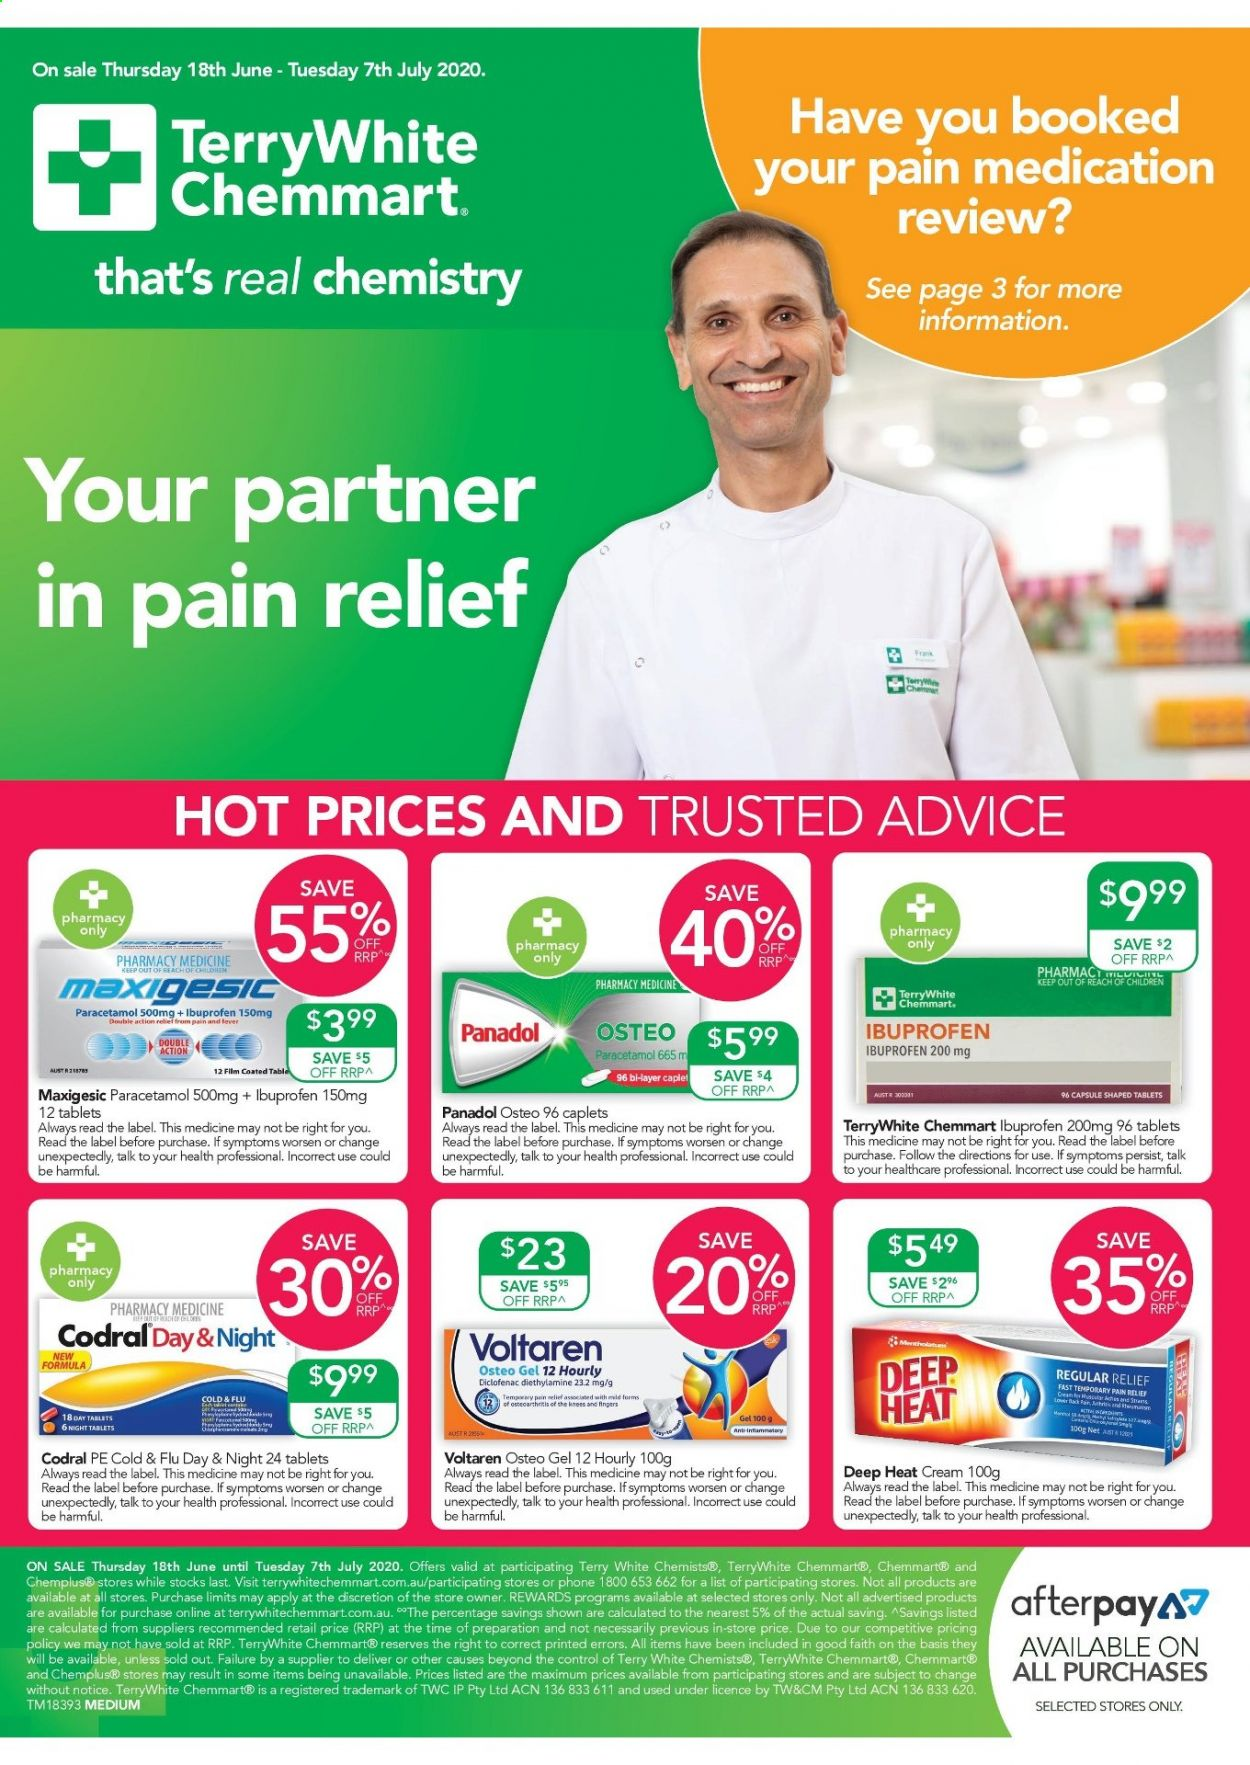 TerryWhite Chemmart Catalogue - 18.6.2020 - 7.7.2020 - Sales products - Cars, Pain Relief, Cold & Flu, Codral, Ibuprofen, phone. Page 1.